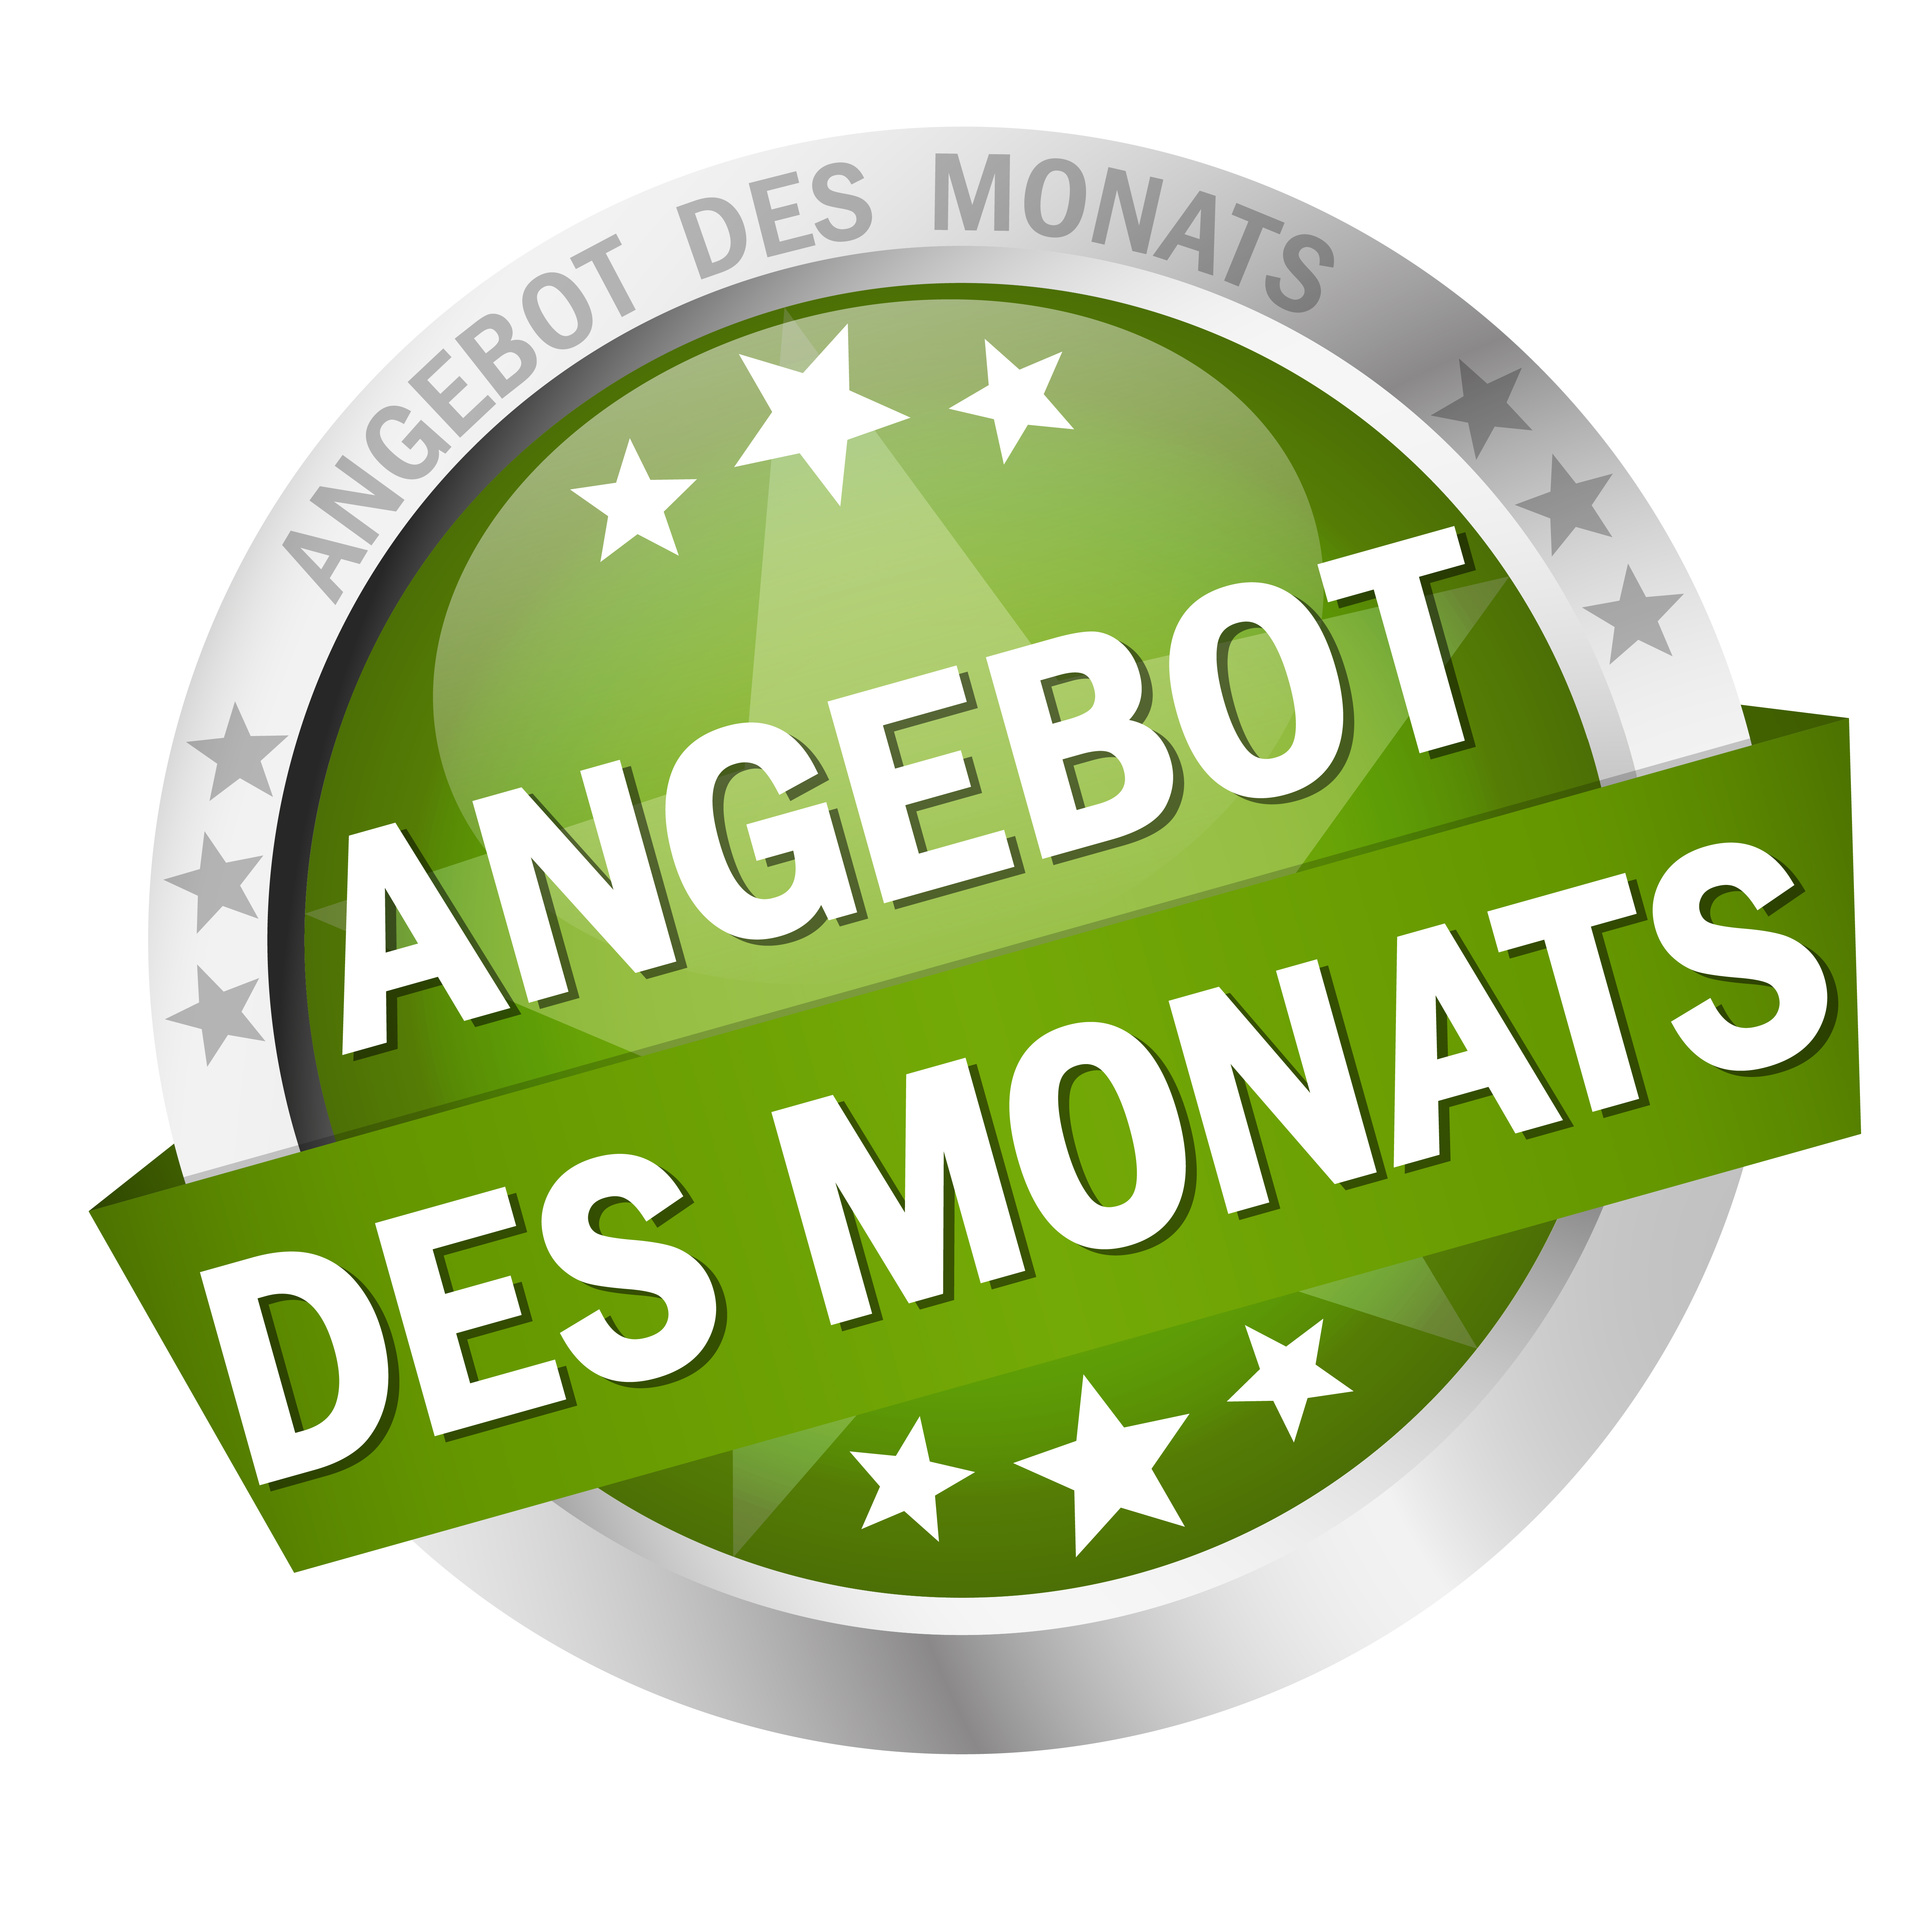 Button with banner - Angebot des Monats